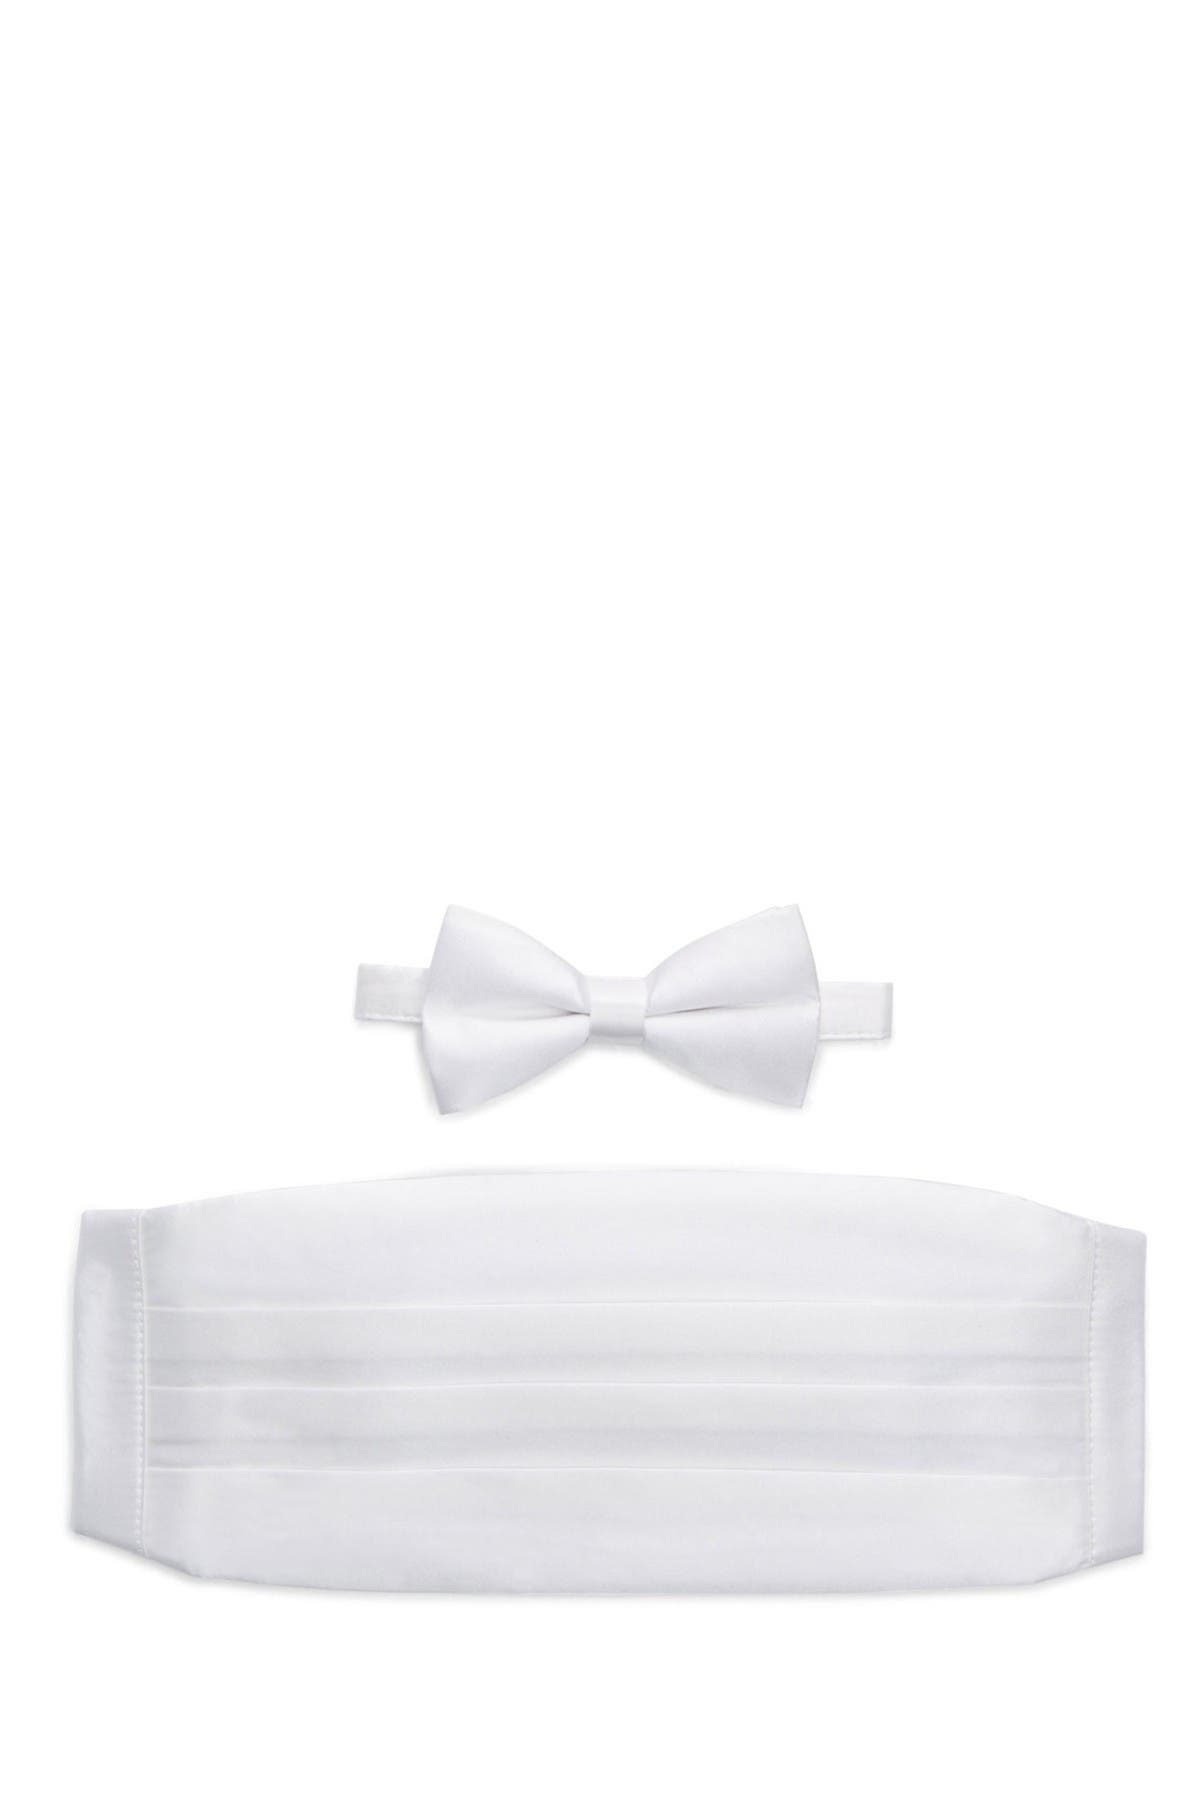 Image of Michelson's Silk Satin Bow Tie & Cummerbund